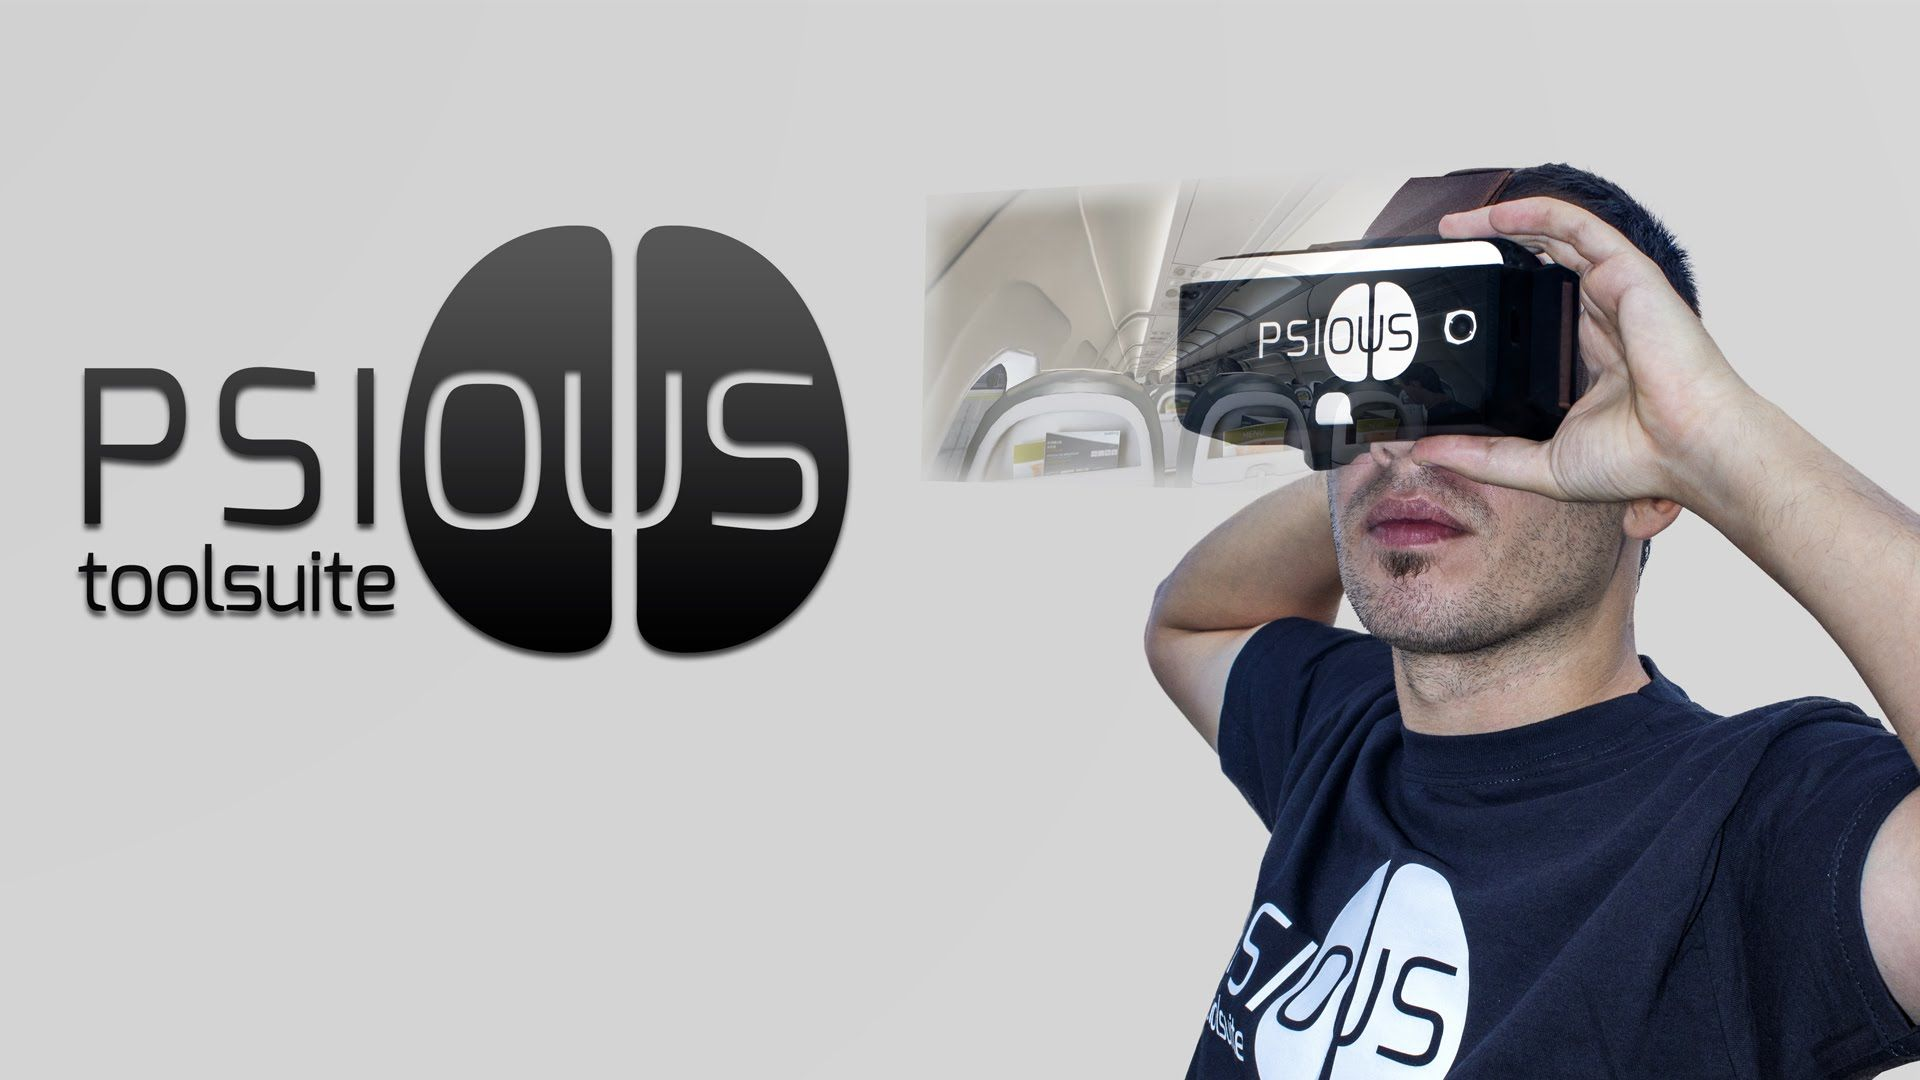 Virtual Reality Therapy with Gear VR for Public Speaking Psious